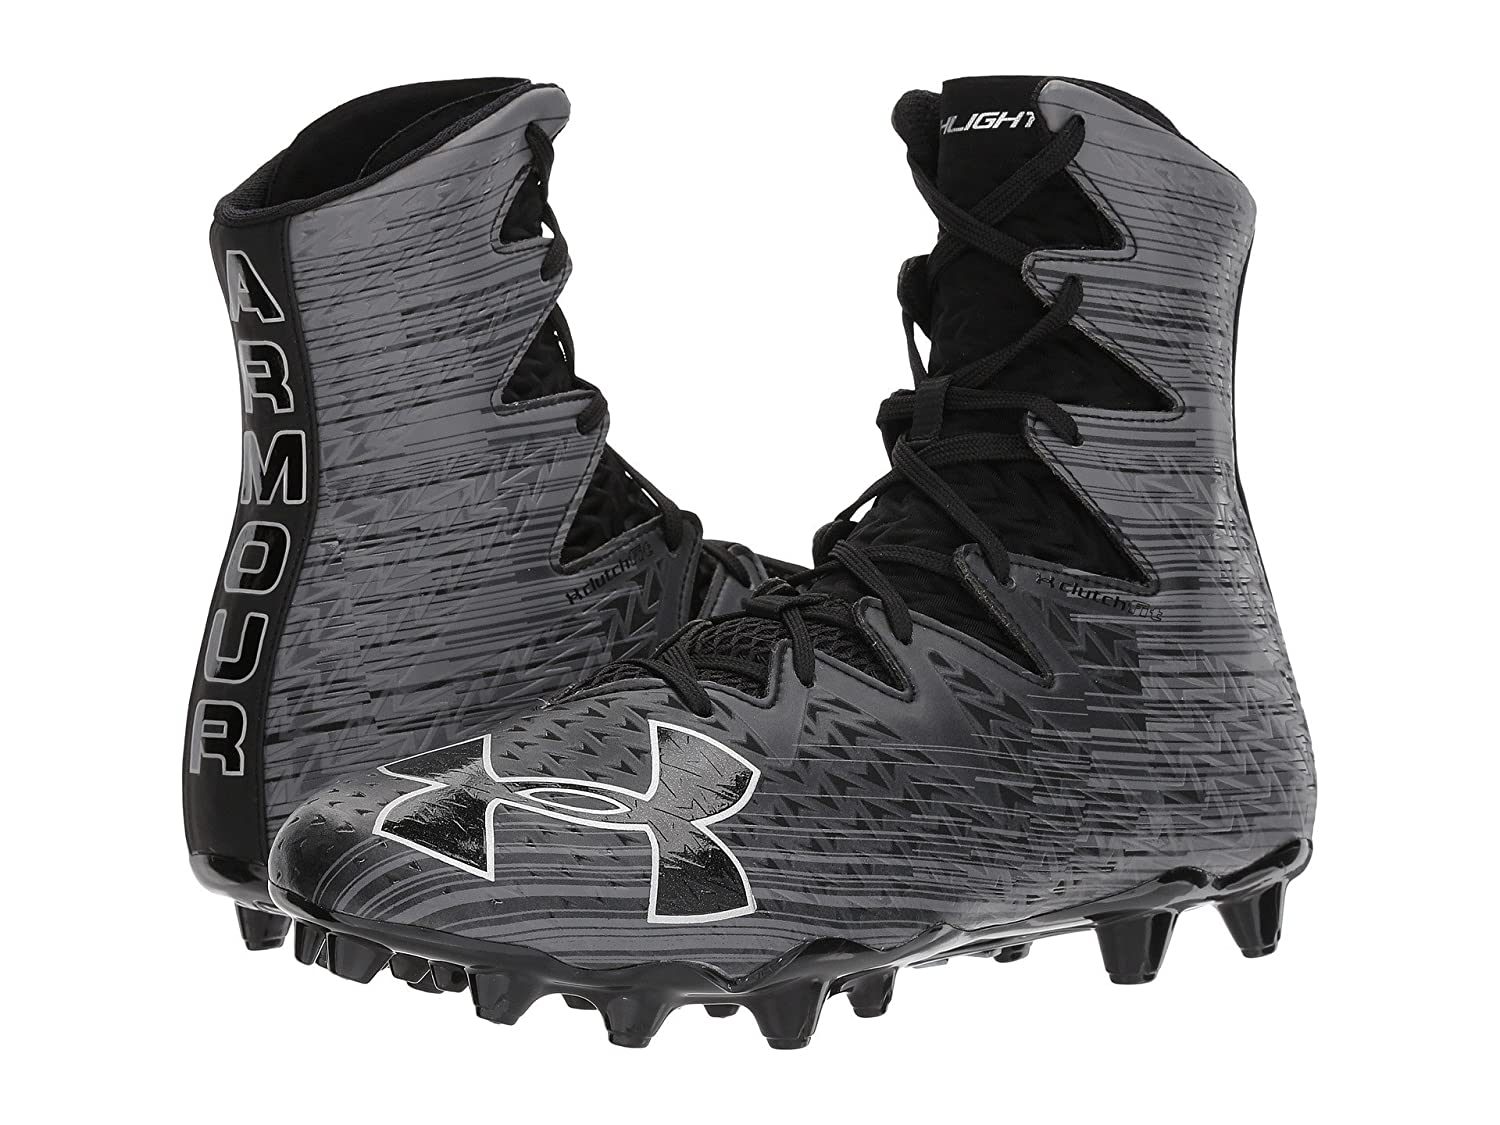 (アンダーアーマー) UNDER ARMOUR メンズフットボールアメフトシューズ靴 UA Highlight MC Black/Metallic Silver 7 (25cm) D - Medium B07C14PHF7